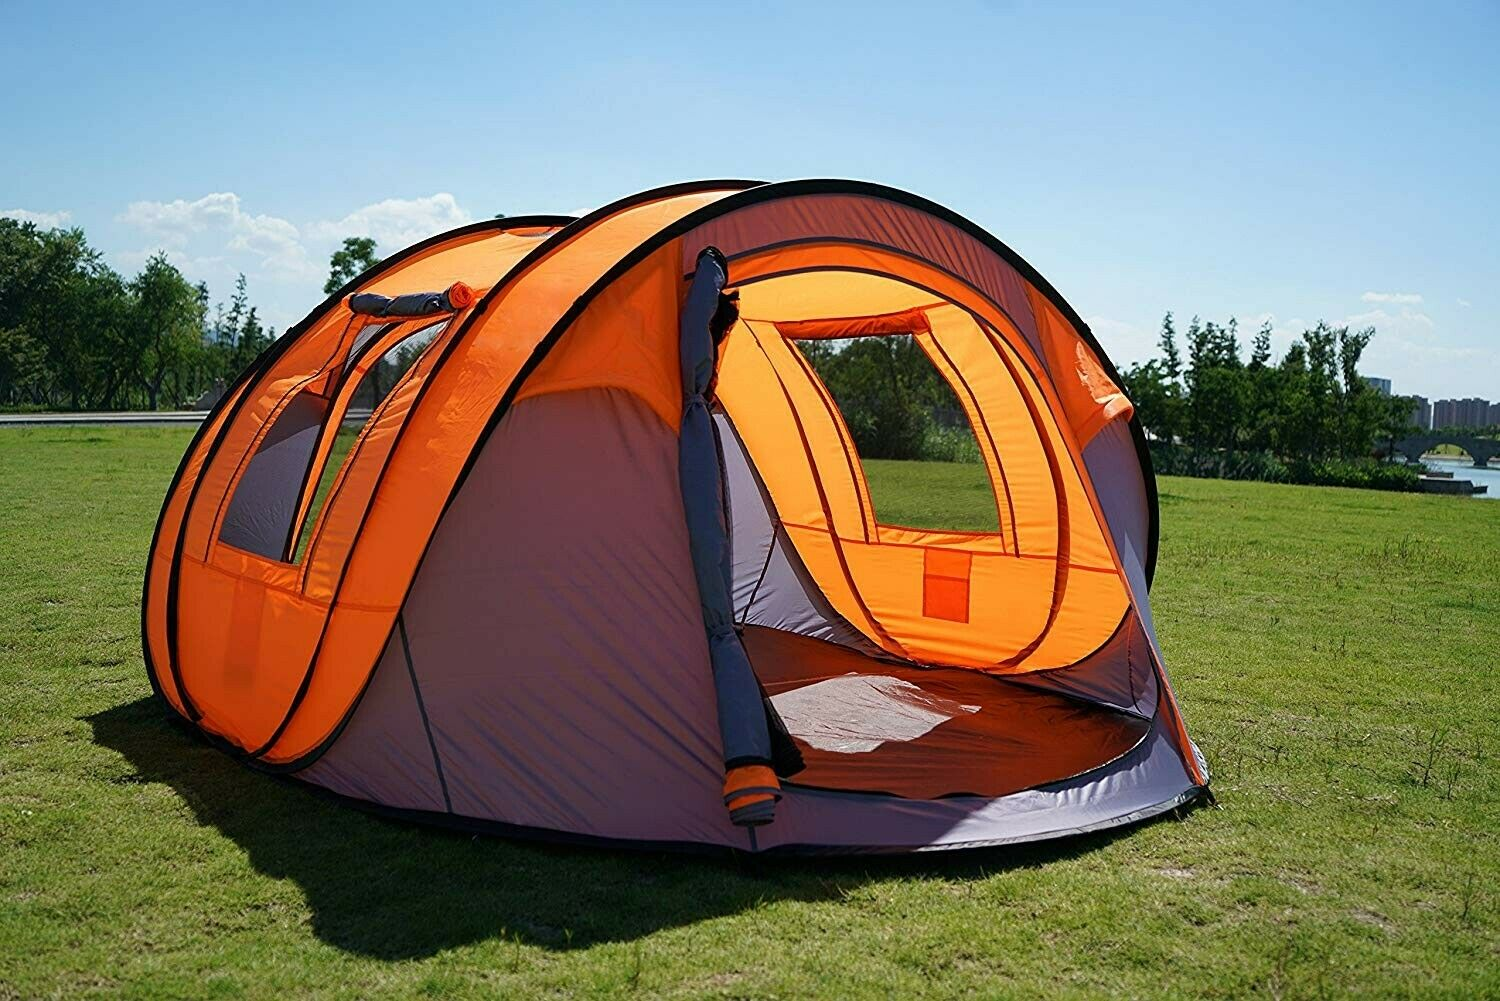 Oileus Pop-up Tents Camping 4 bis 6 Person Tent Sky-Window(45 im Kombi-Stil)